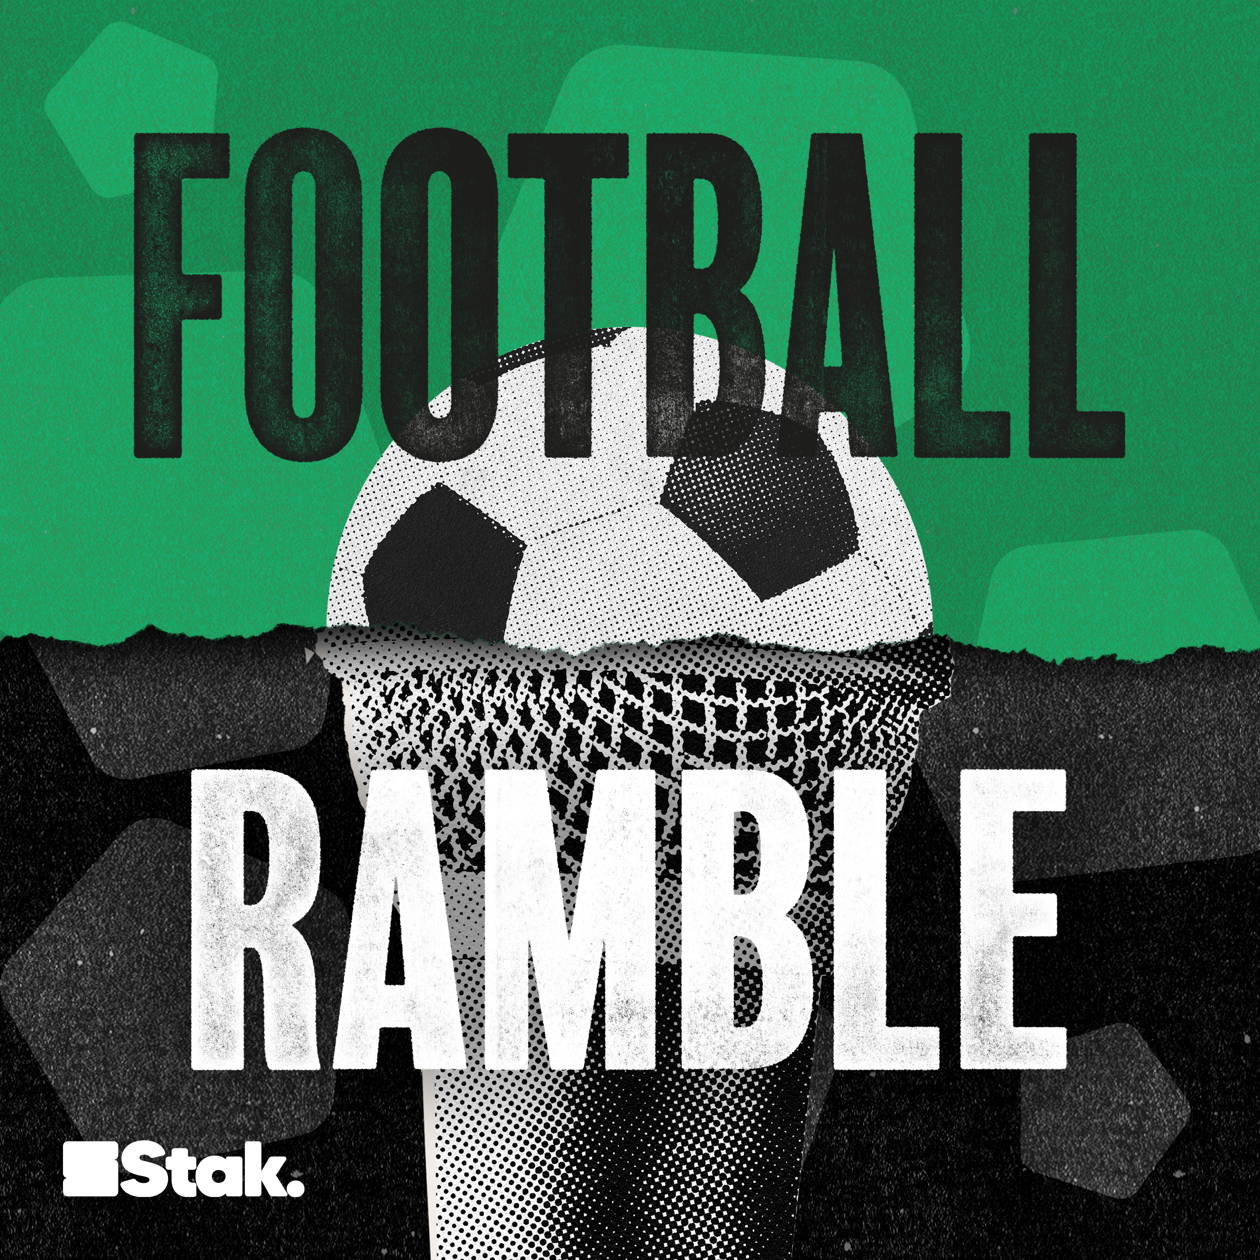 Artwork for the Football Ramble podcast.